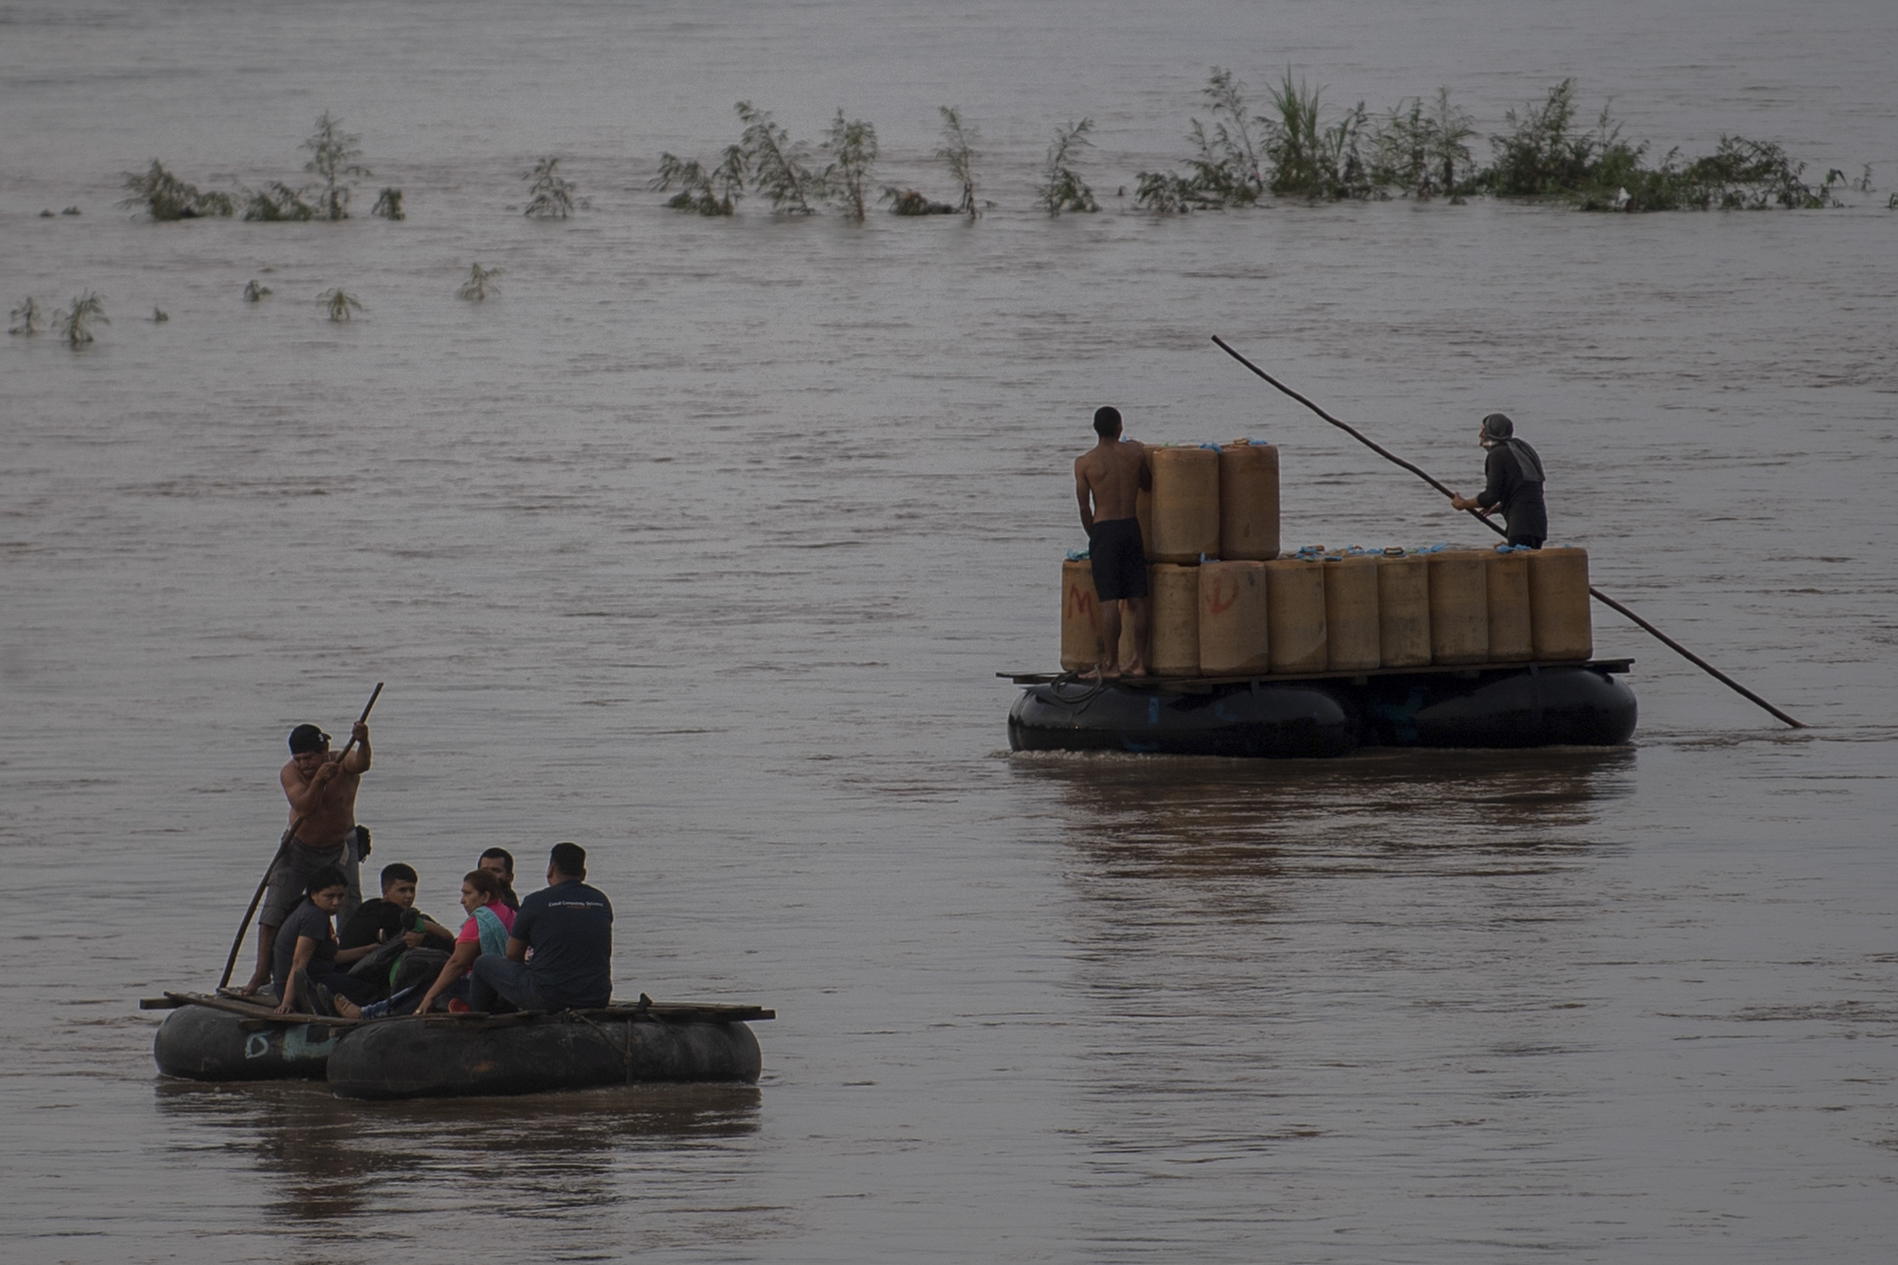 Locals use a makeshift raft to illegally cross the Suchiate river from Ciudad Hidalgo in Chiapas State, Mexico, to Tecun Uman in Guatemala, on June 10, 2019.